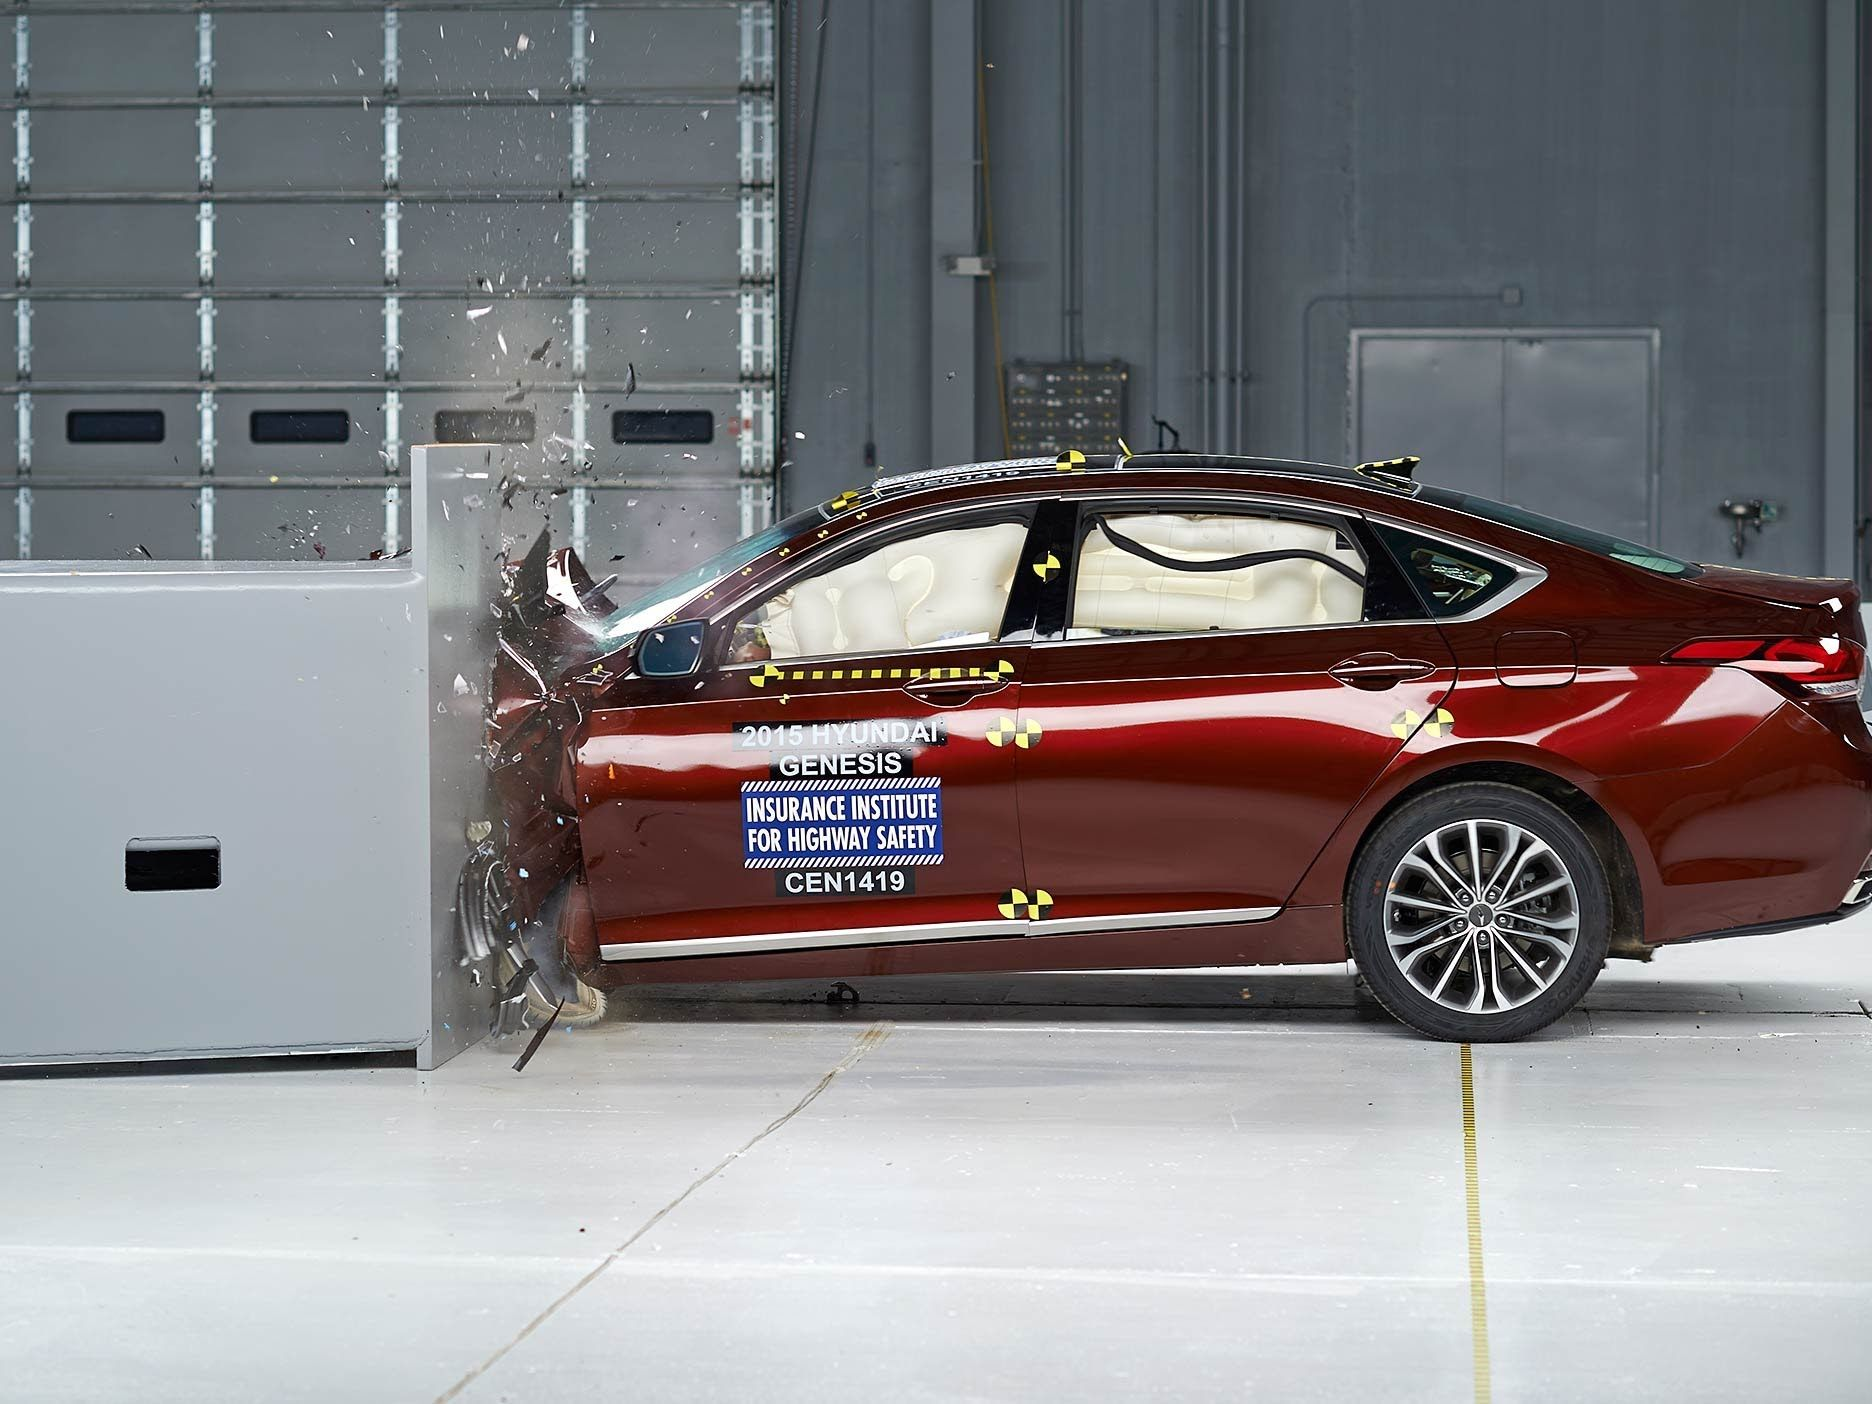 2015 Hyundai Genesis Small Overlap Iihs Crash Test Available From